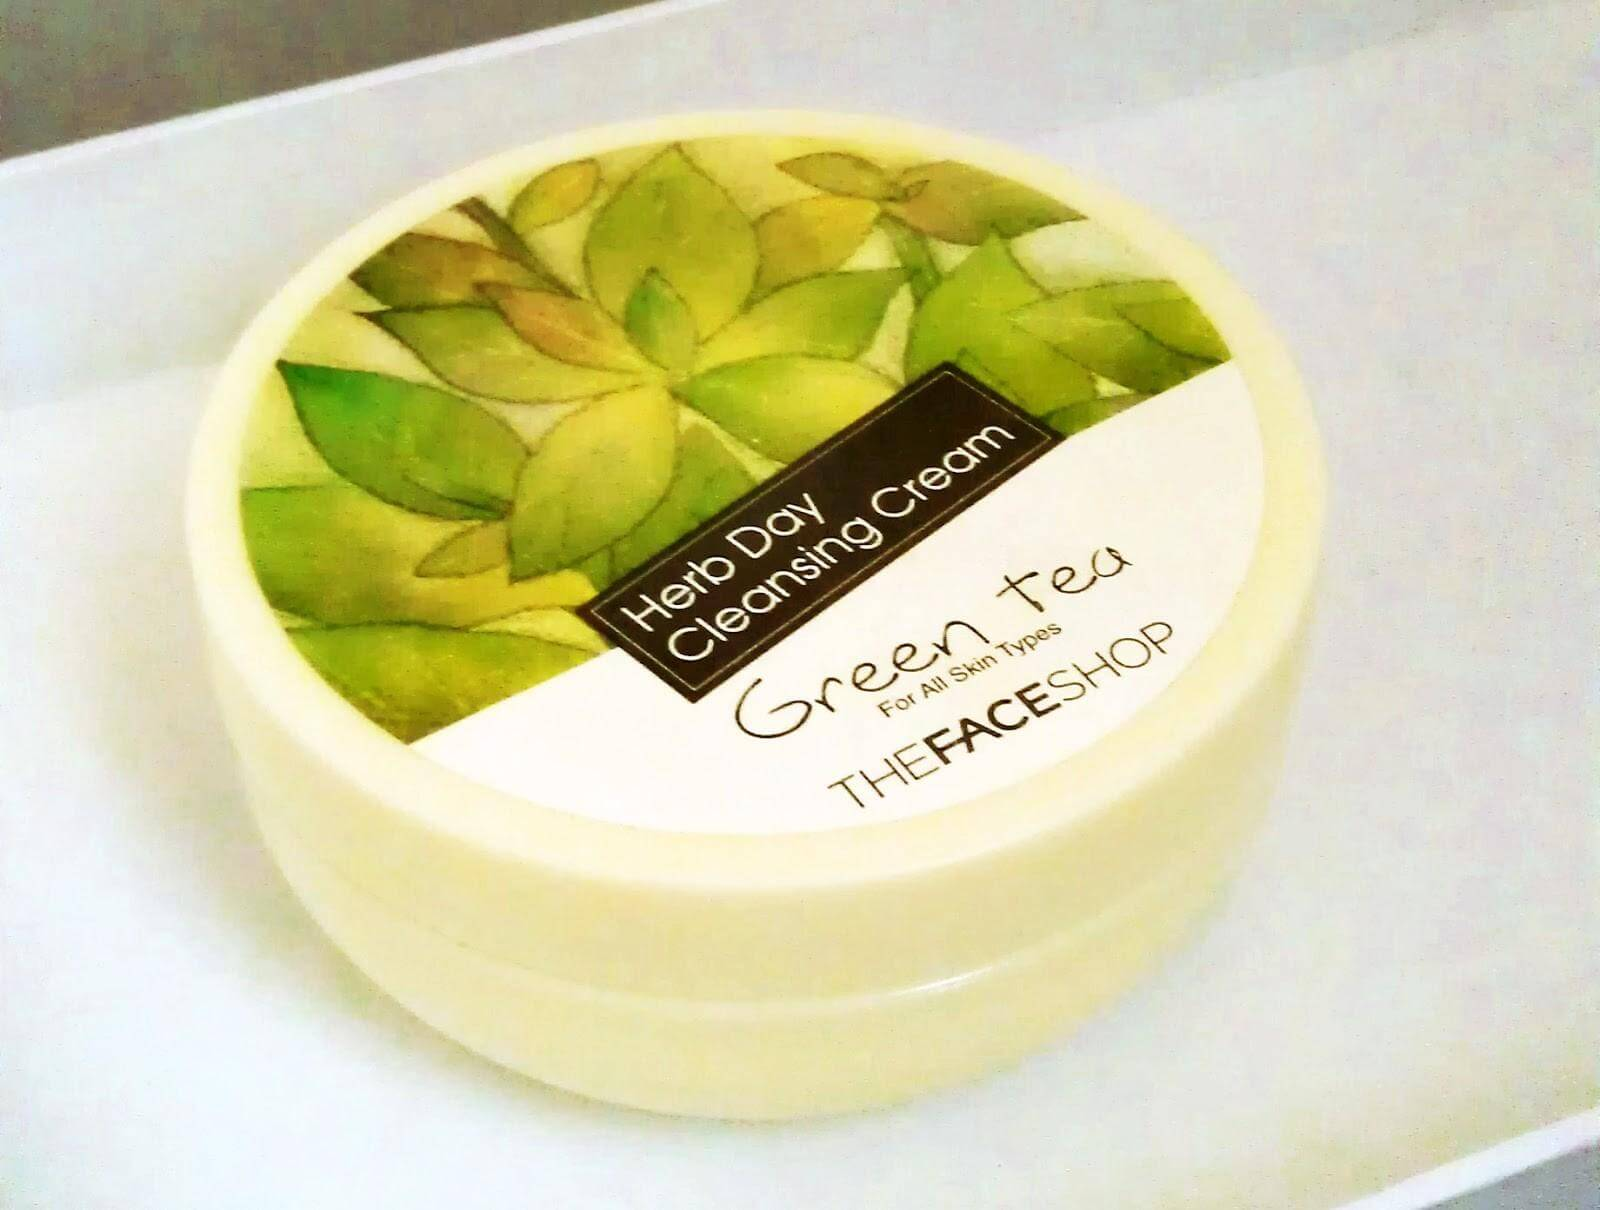 https://rivi.vn/wp-content/uploads/2017/12/kem-tay-trang-thefaceshop-herb-day-cleansing-cream-green-tea-01.jpg